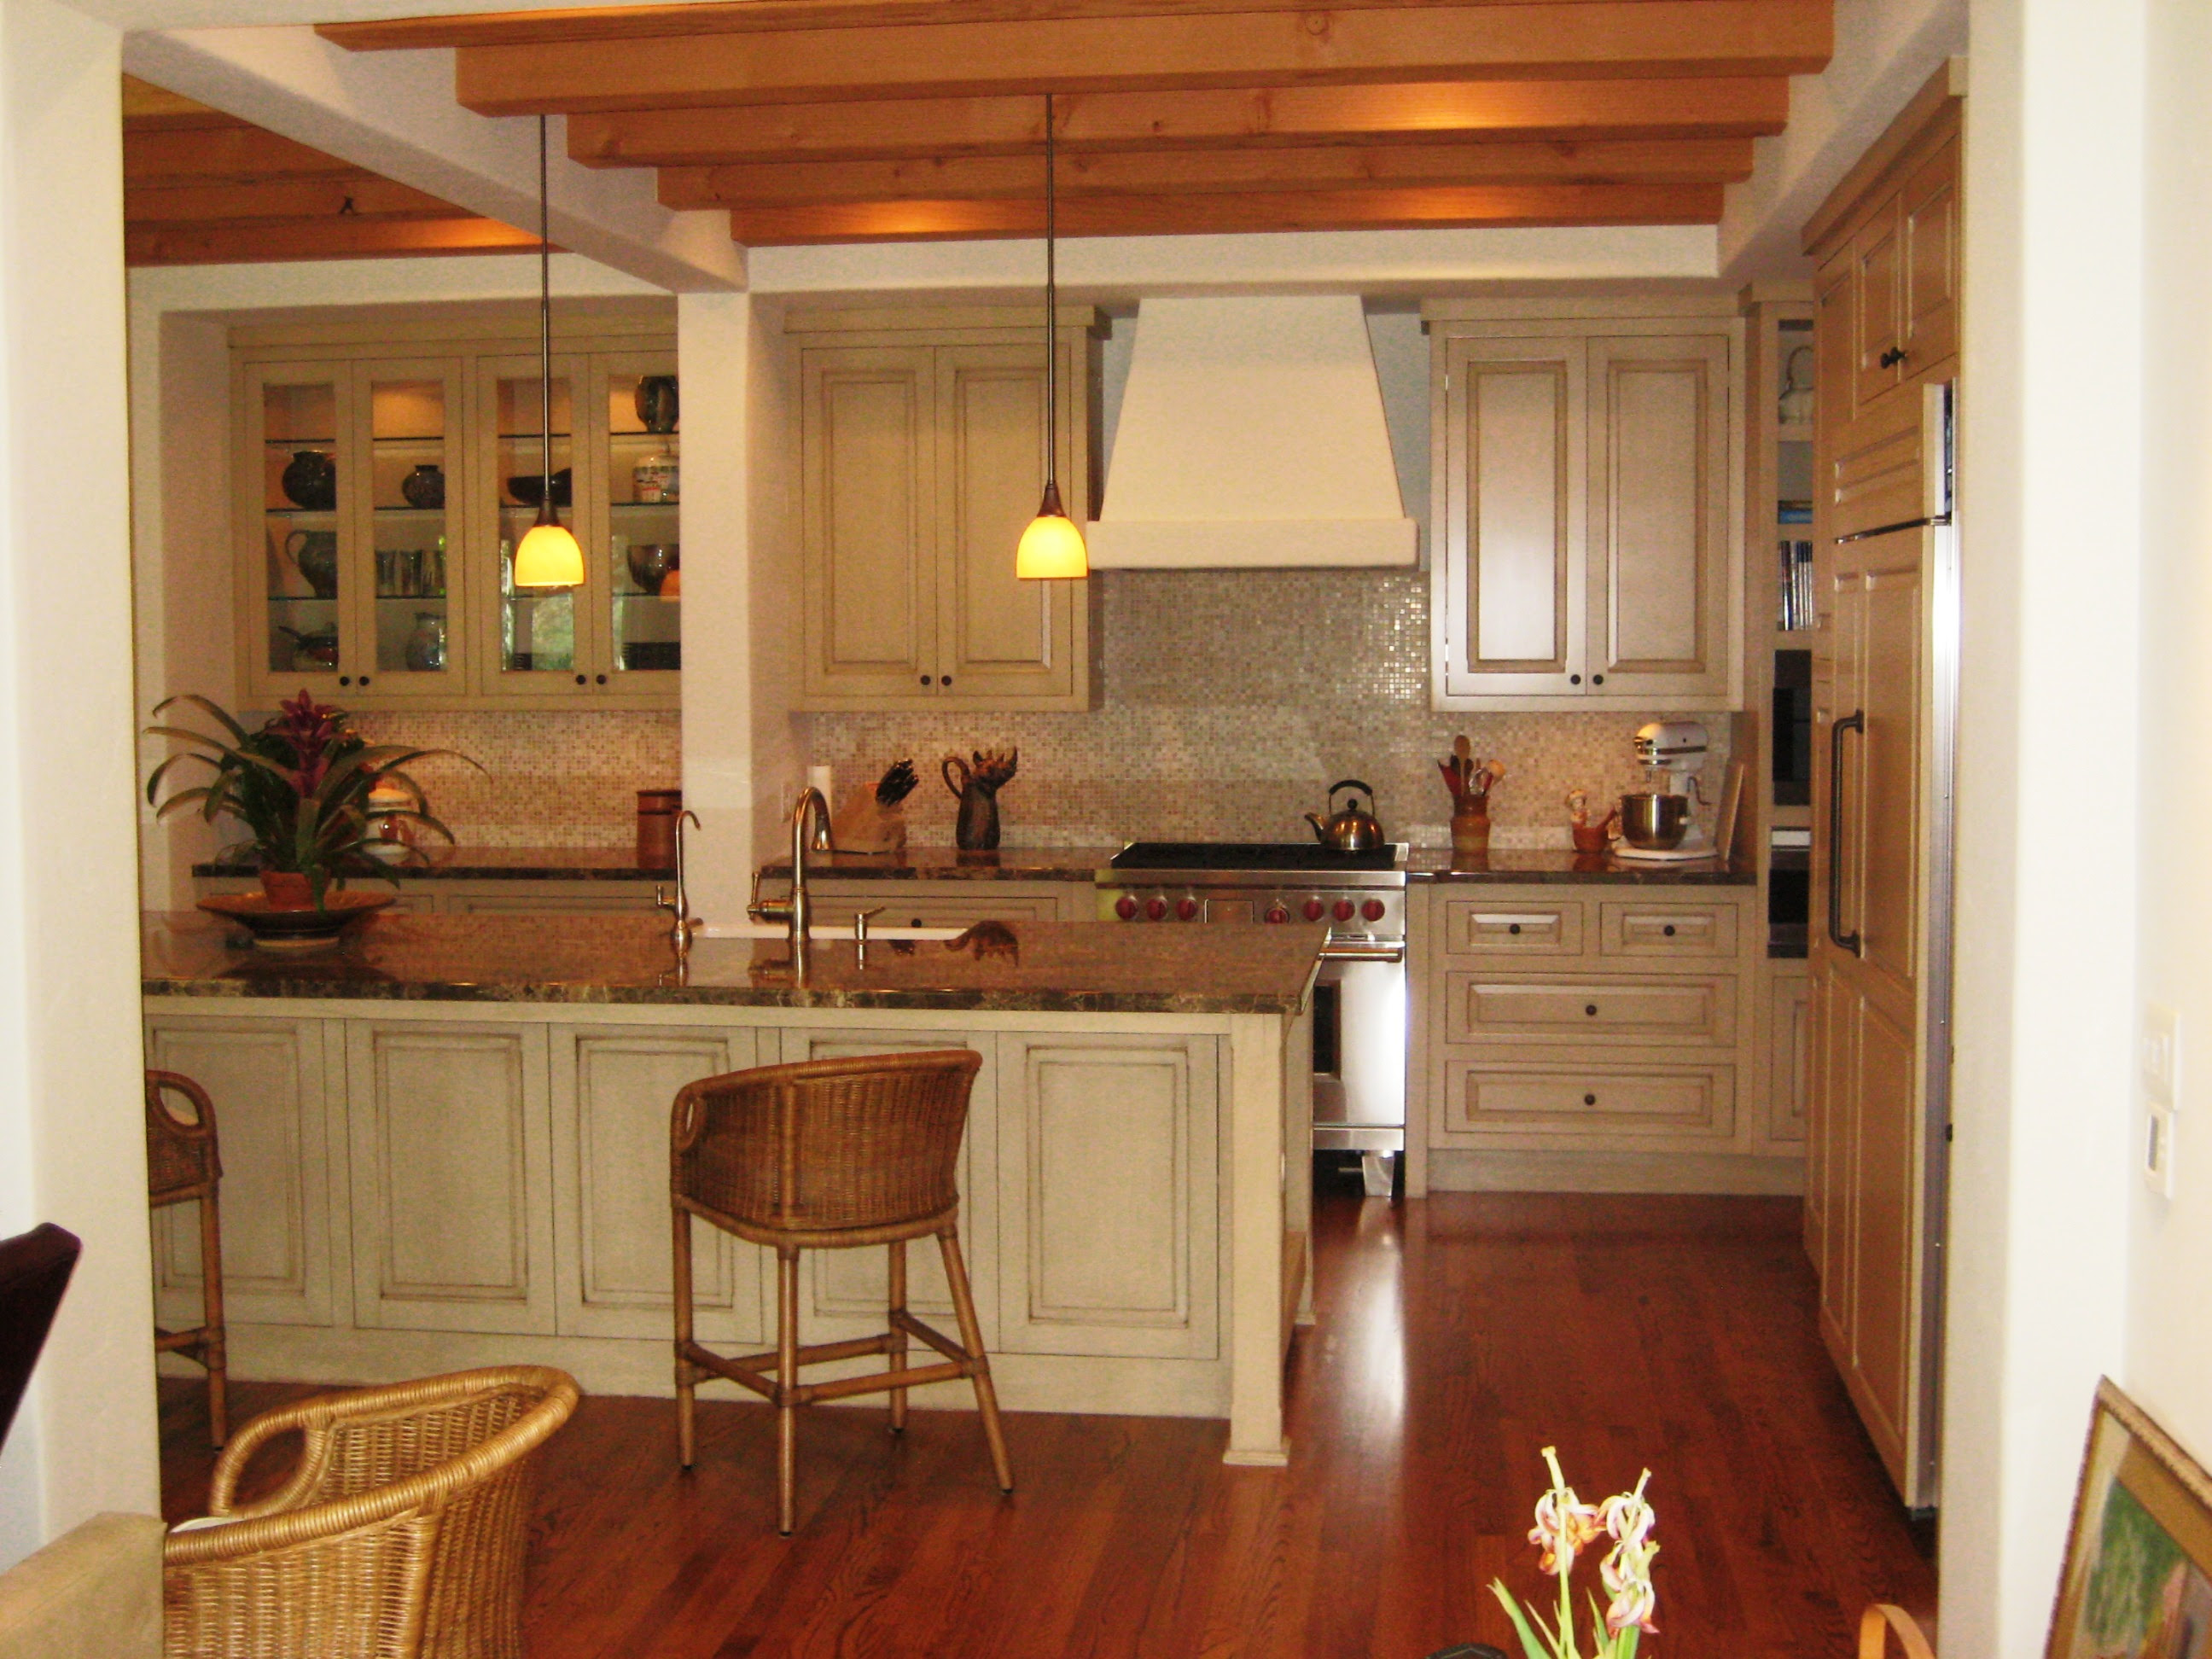 Antique kitchen 021 | Custom Cabinets by Mahnken Cabinets